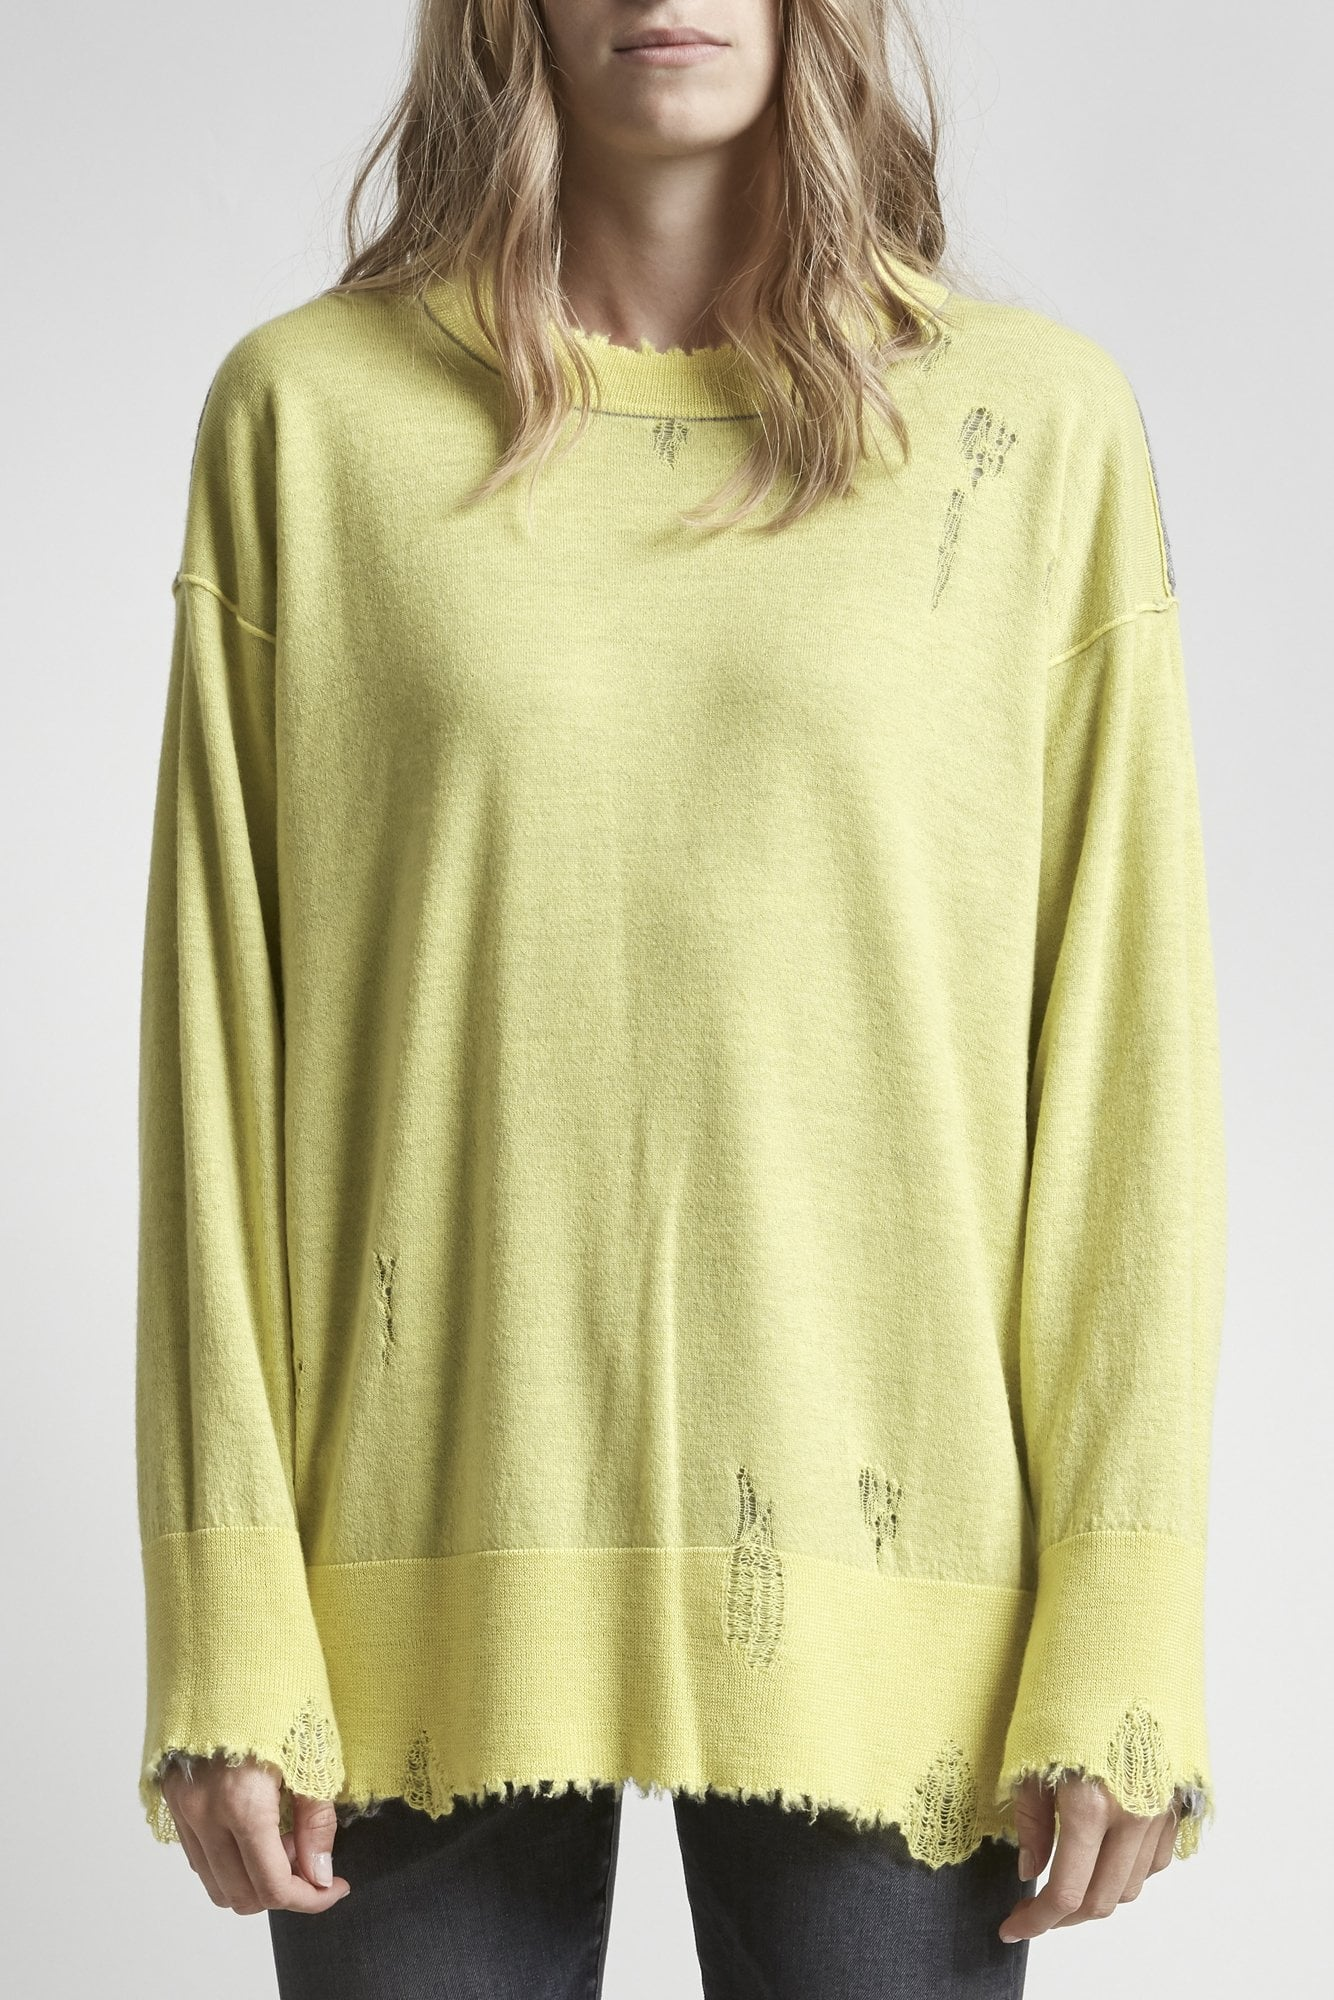 Reversible Crewneck Sweater-Heather Grey w/ Yellow